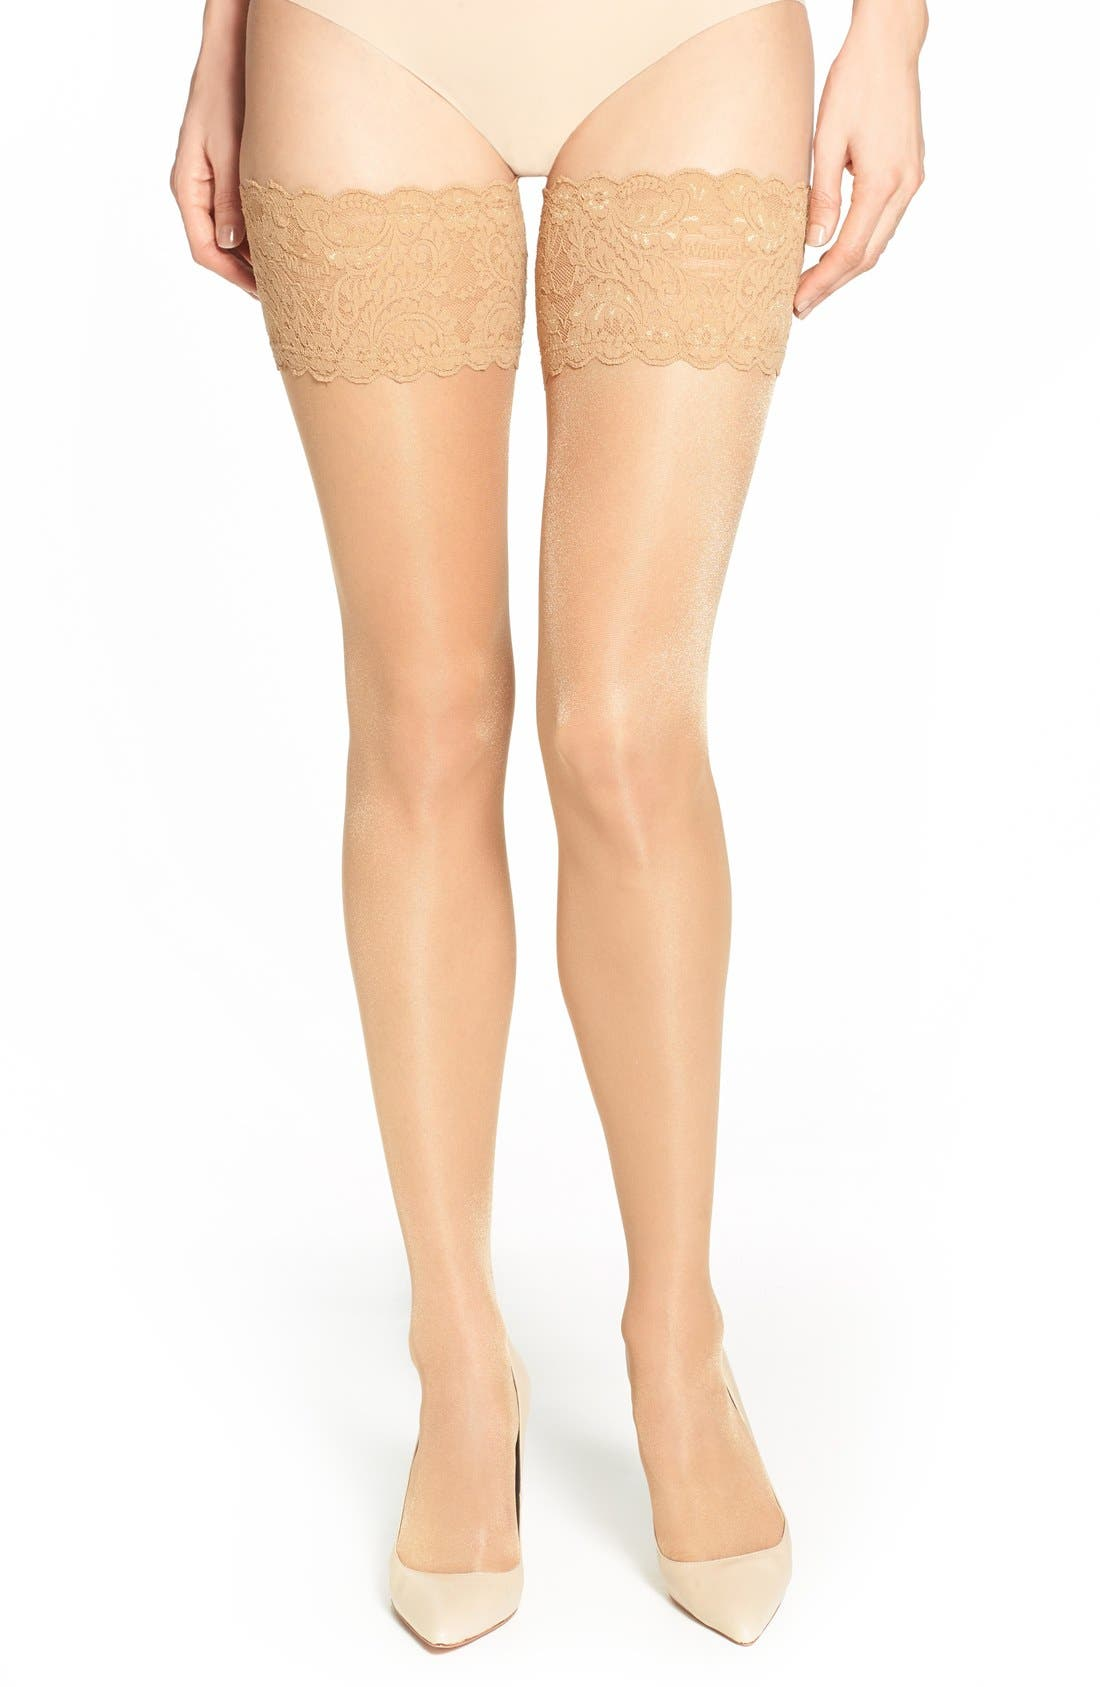 Satin Touch 20 Stay-Up Stockings,                             Main thumbnail 1, color,                             Gobi